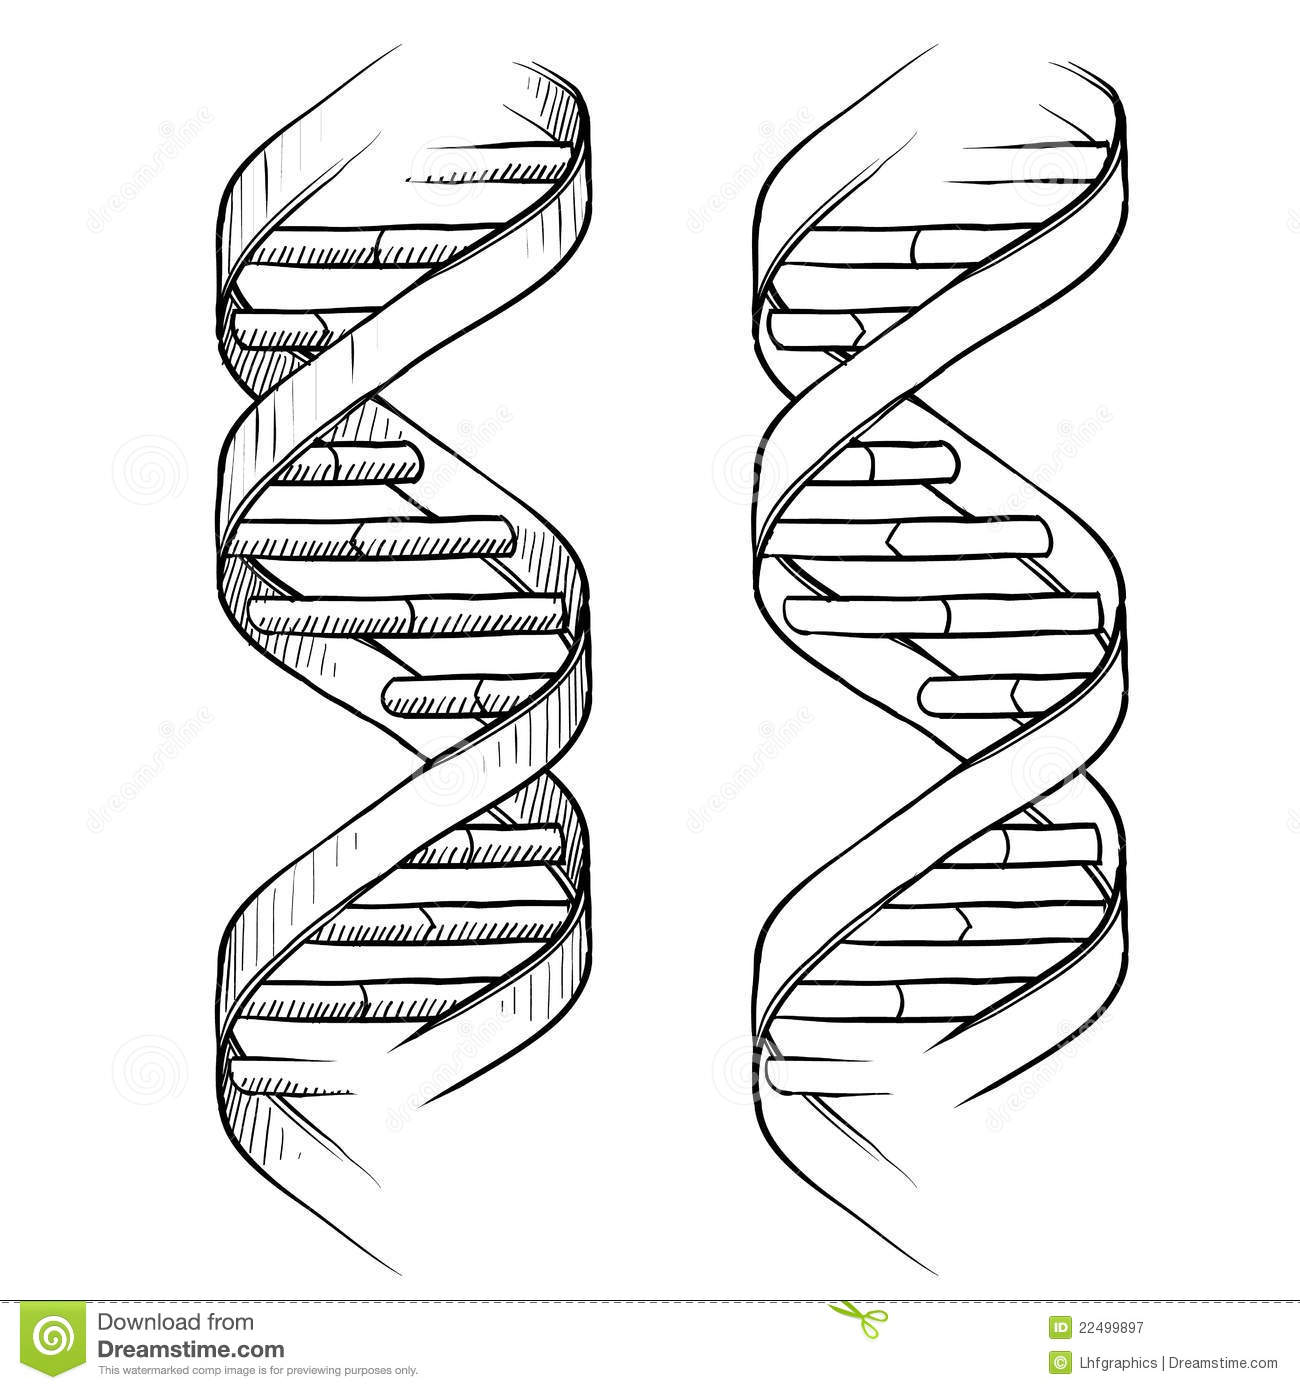 dna double helix drawing stock vector. illustration of illustration - 22499897 bone structure diagram